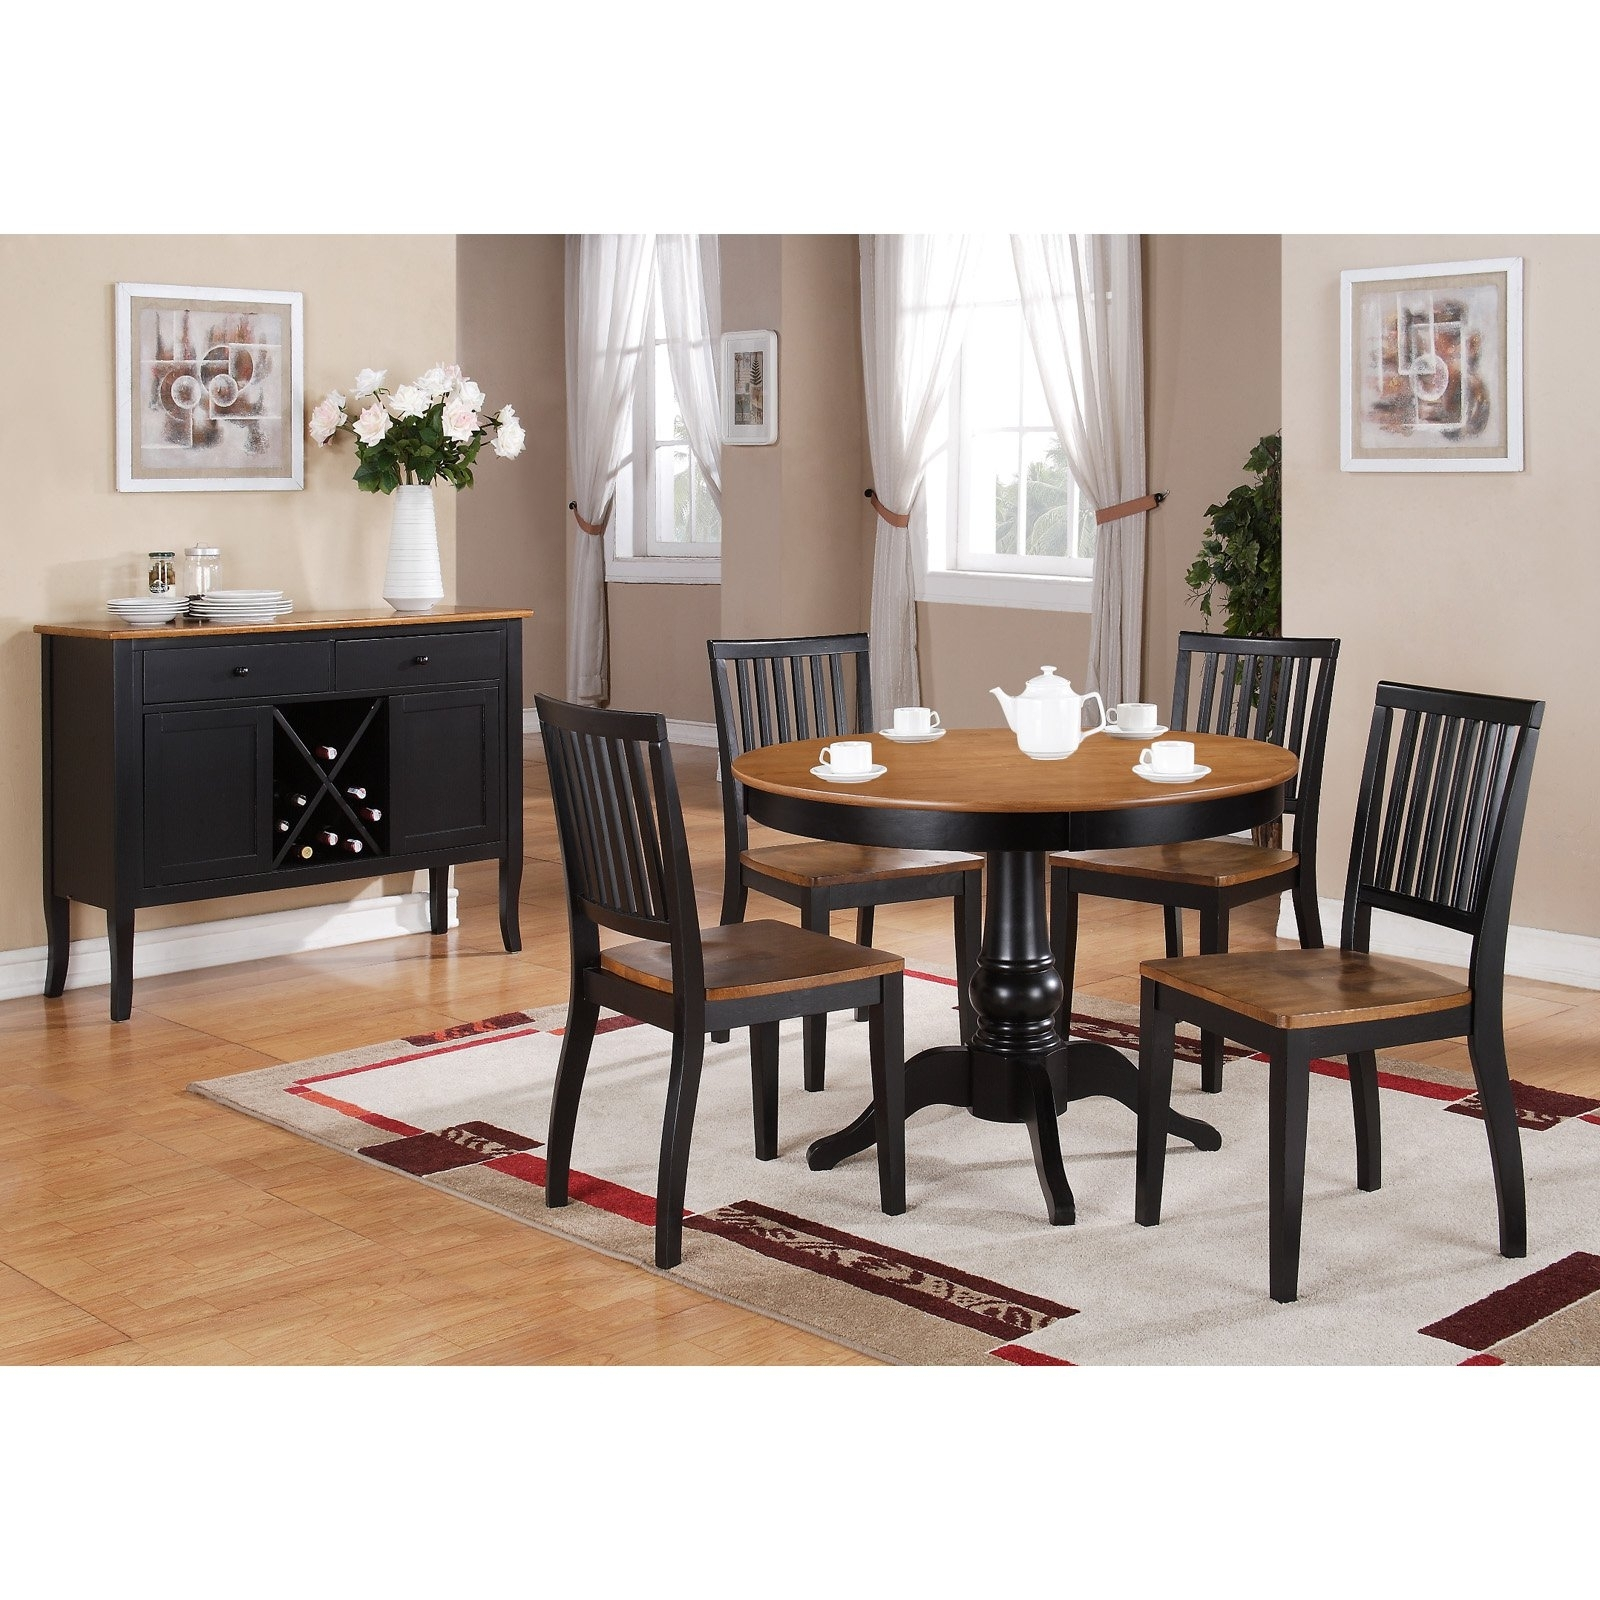 Candice Ii 5 Piece Round Dining Sets With Trendy Steve Silver 5 Piece Candice Two Tone Round Pedestal Dining Table (Gallery 4 of 25)